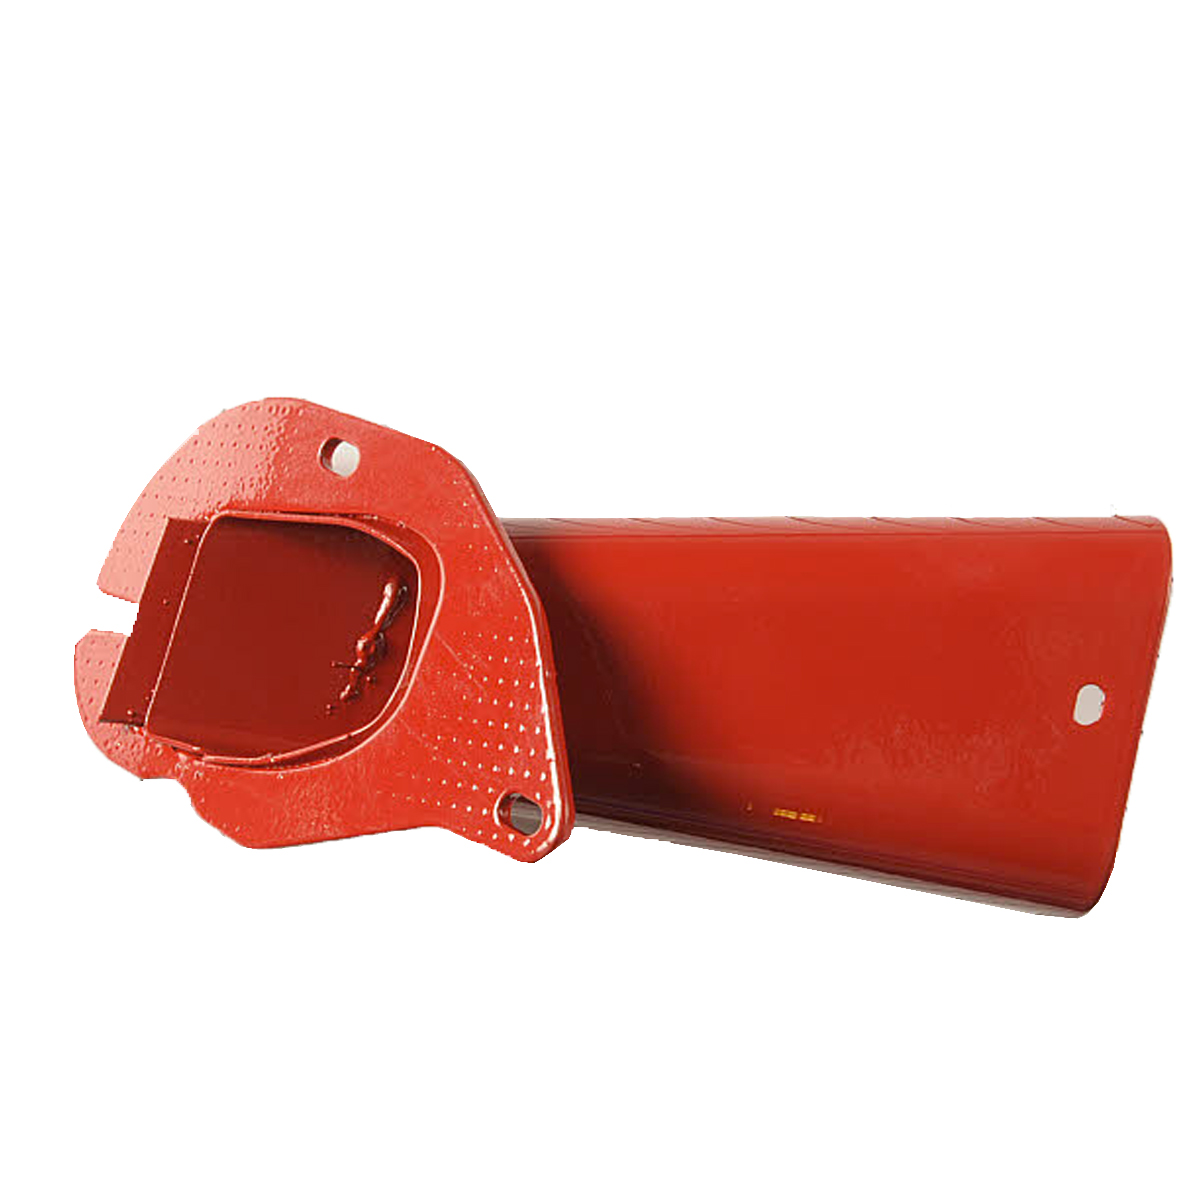 Chipper Lower Chute Craftsman Red 681-04119-4044